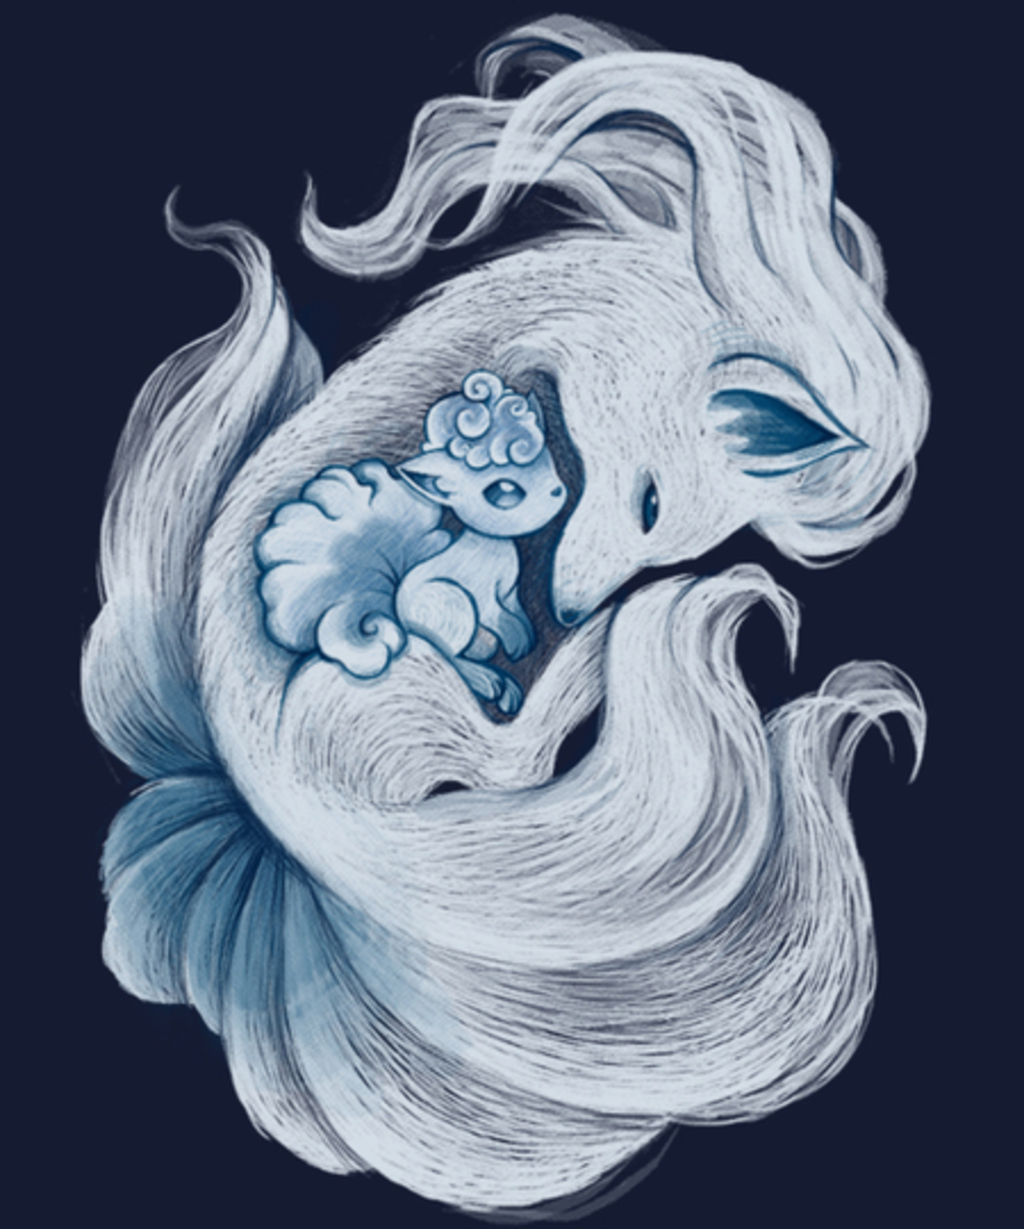 Qwertee: Ice tails tales